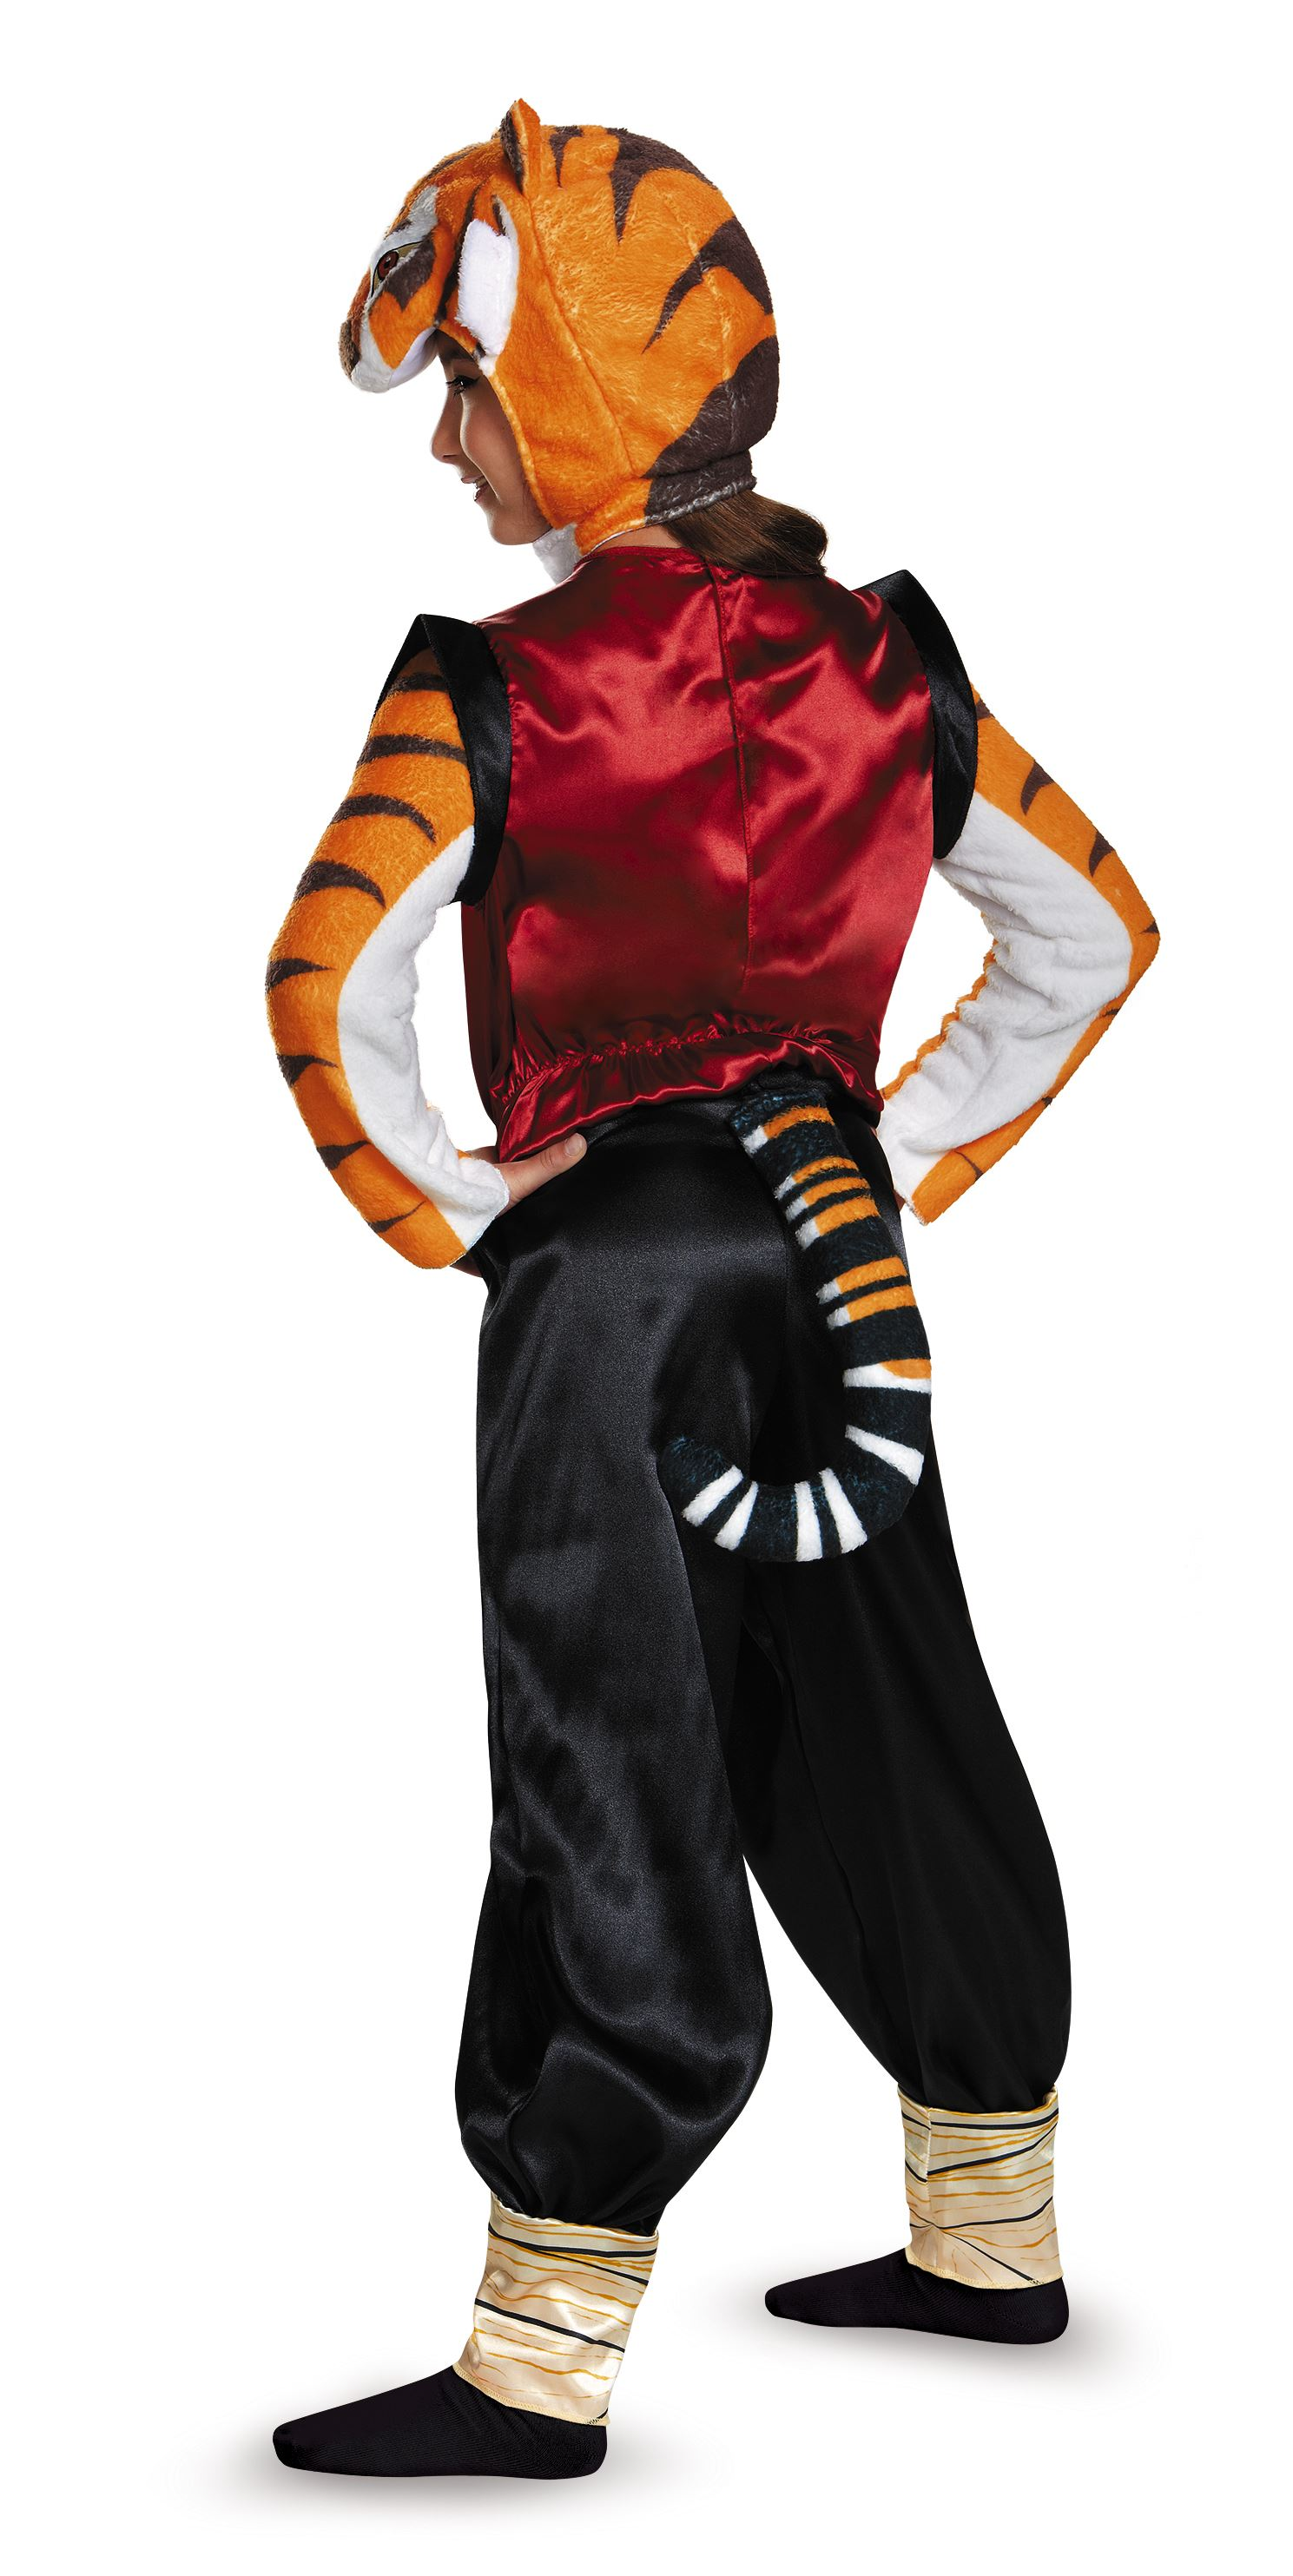 ... Kids Tigress Kung Fu Panda Girls Costume  sc 1 st  The Costume Land & Kids Tigress Kung Fu Panda Girls Costume | $35.99 | The Costume Land